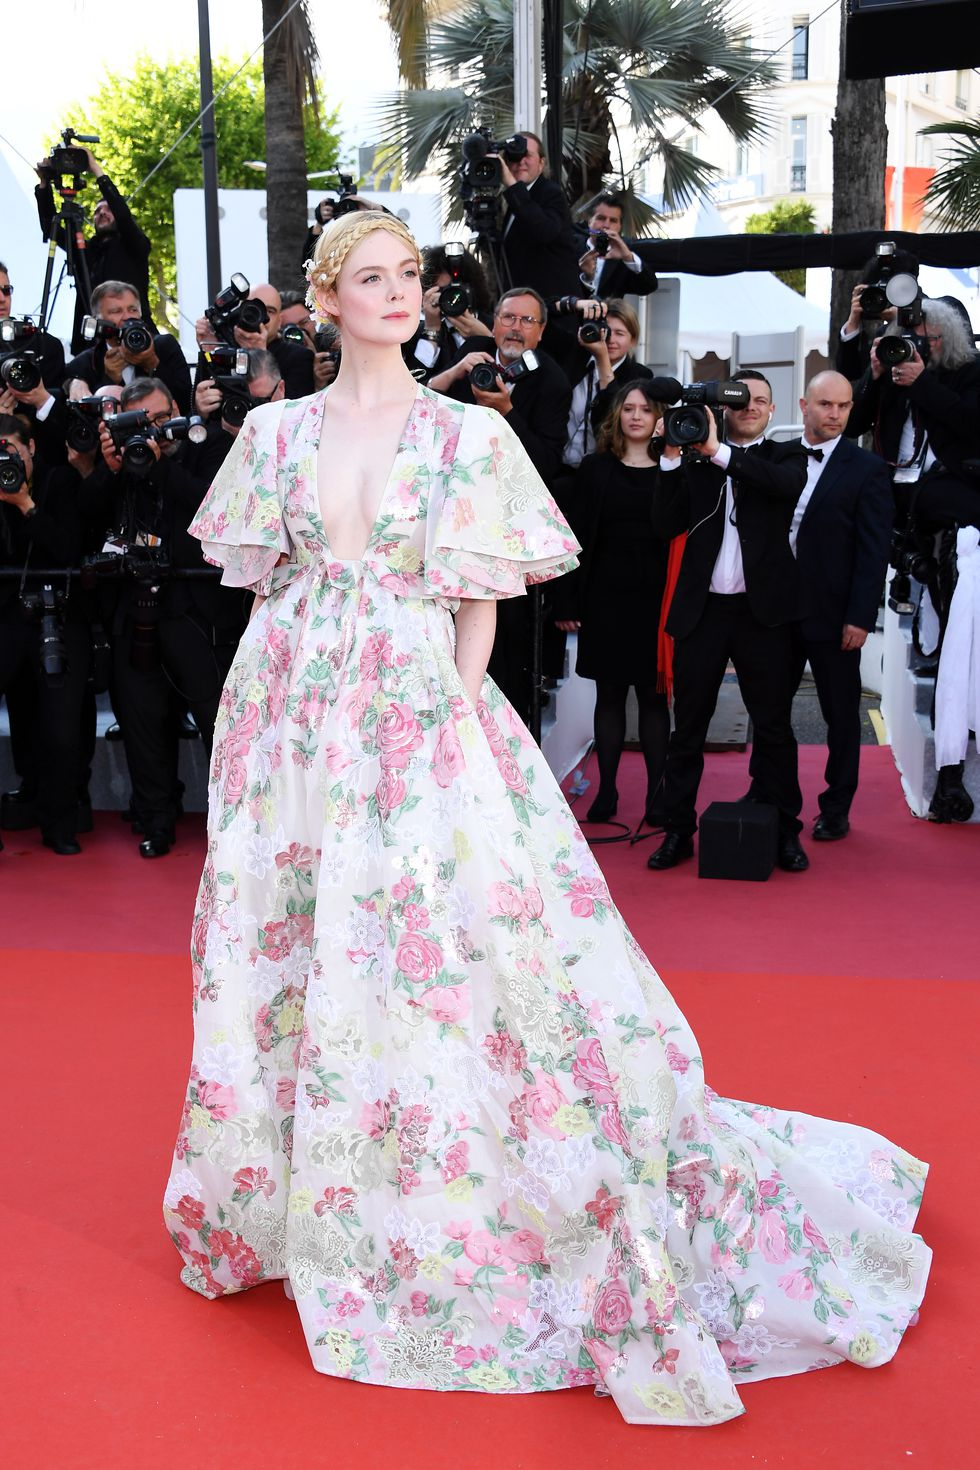 elle-fanning-attends-the-screening-of-les-miserables-during-news-photo-1valentinohc